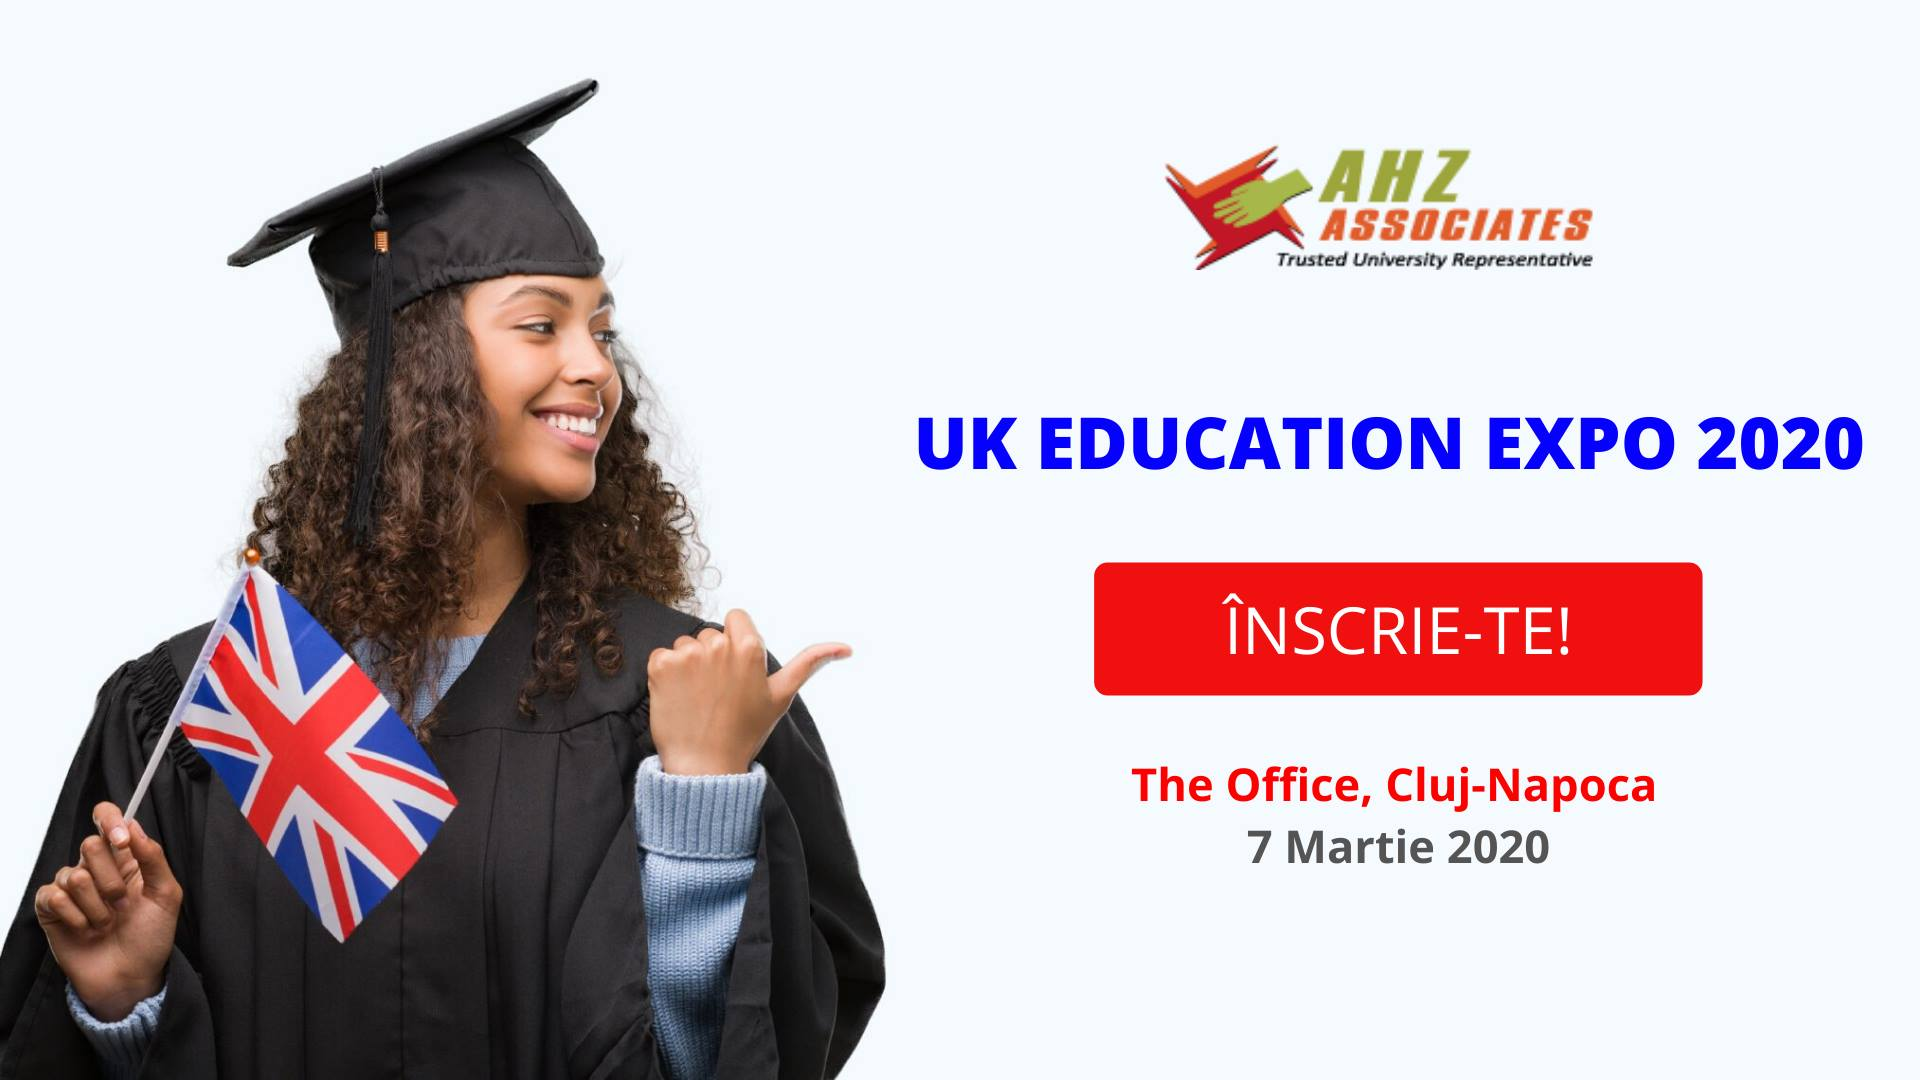 UK Education Expo 2020 @ The Office